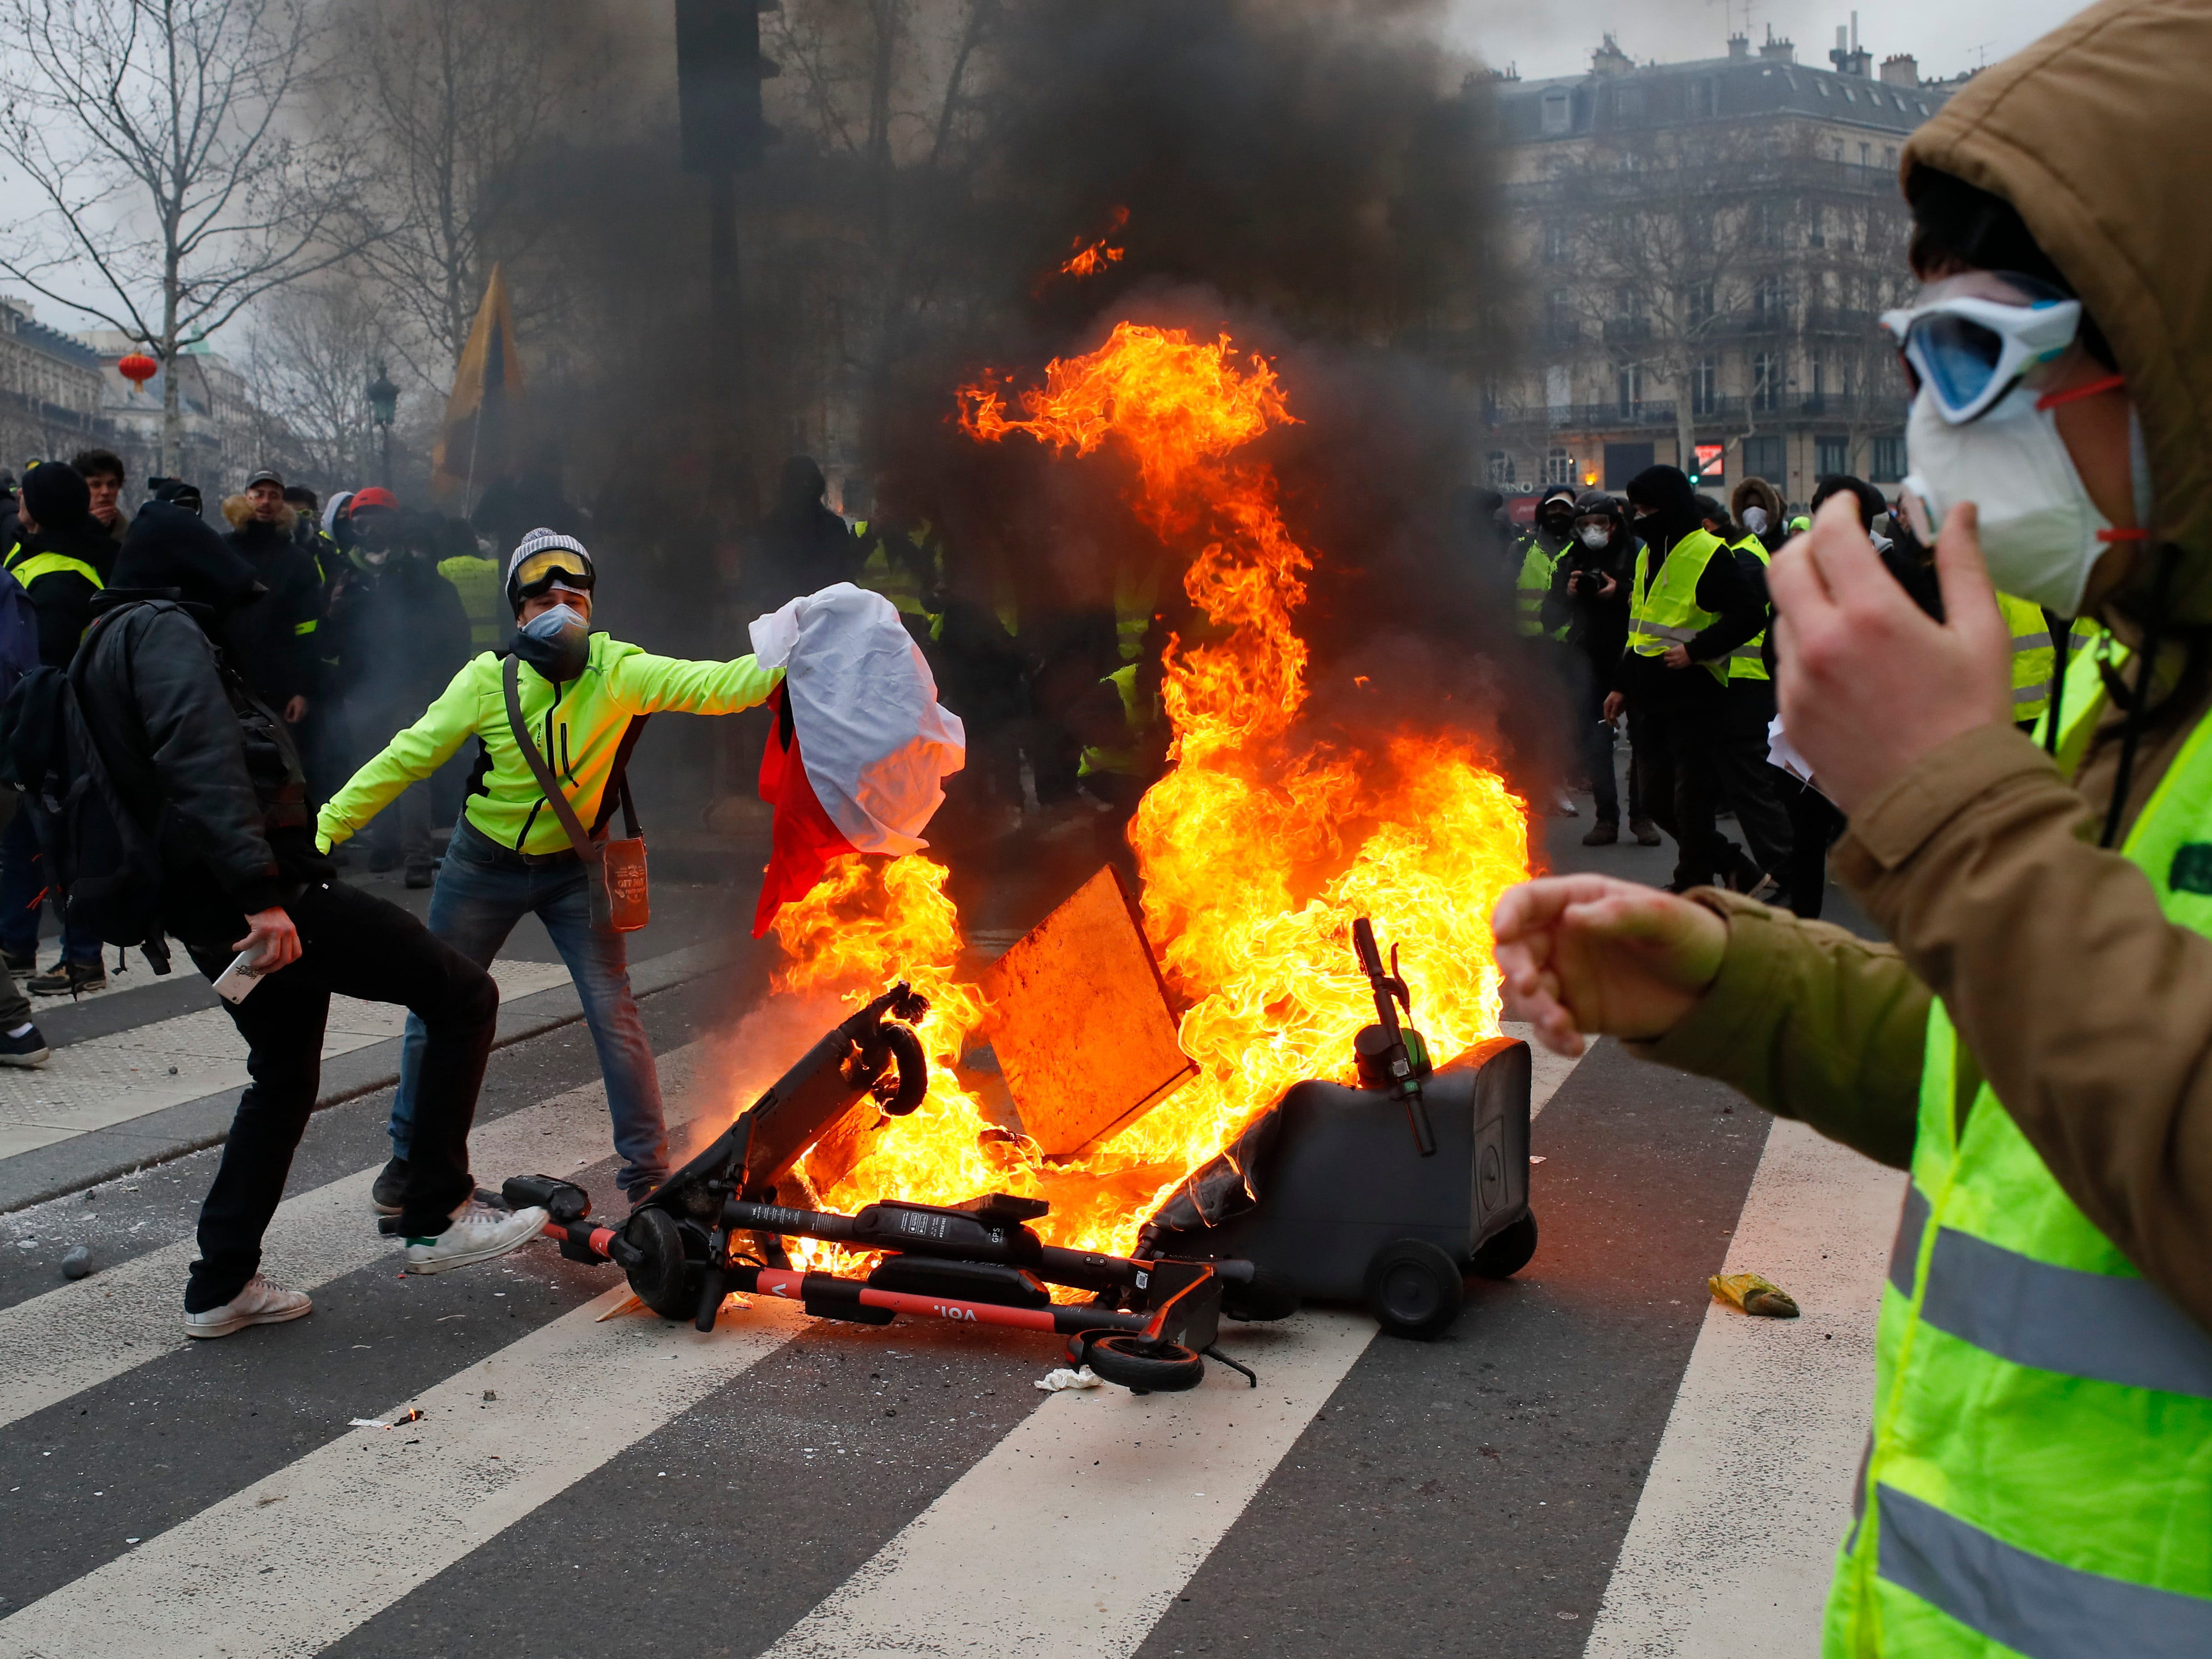 Demonstrators set a fire on the Place de la Republique after a yellow vest protest, Saturday, Feb. 2, 2019 in Paris. France's yellow vest protesters were back on the streets Saturday to keep pressure on French President Emmanuel Macron's government and denounce the large number of people injured in demonstrations they say is the result of police violence.